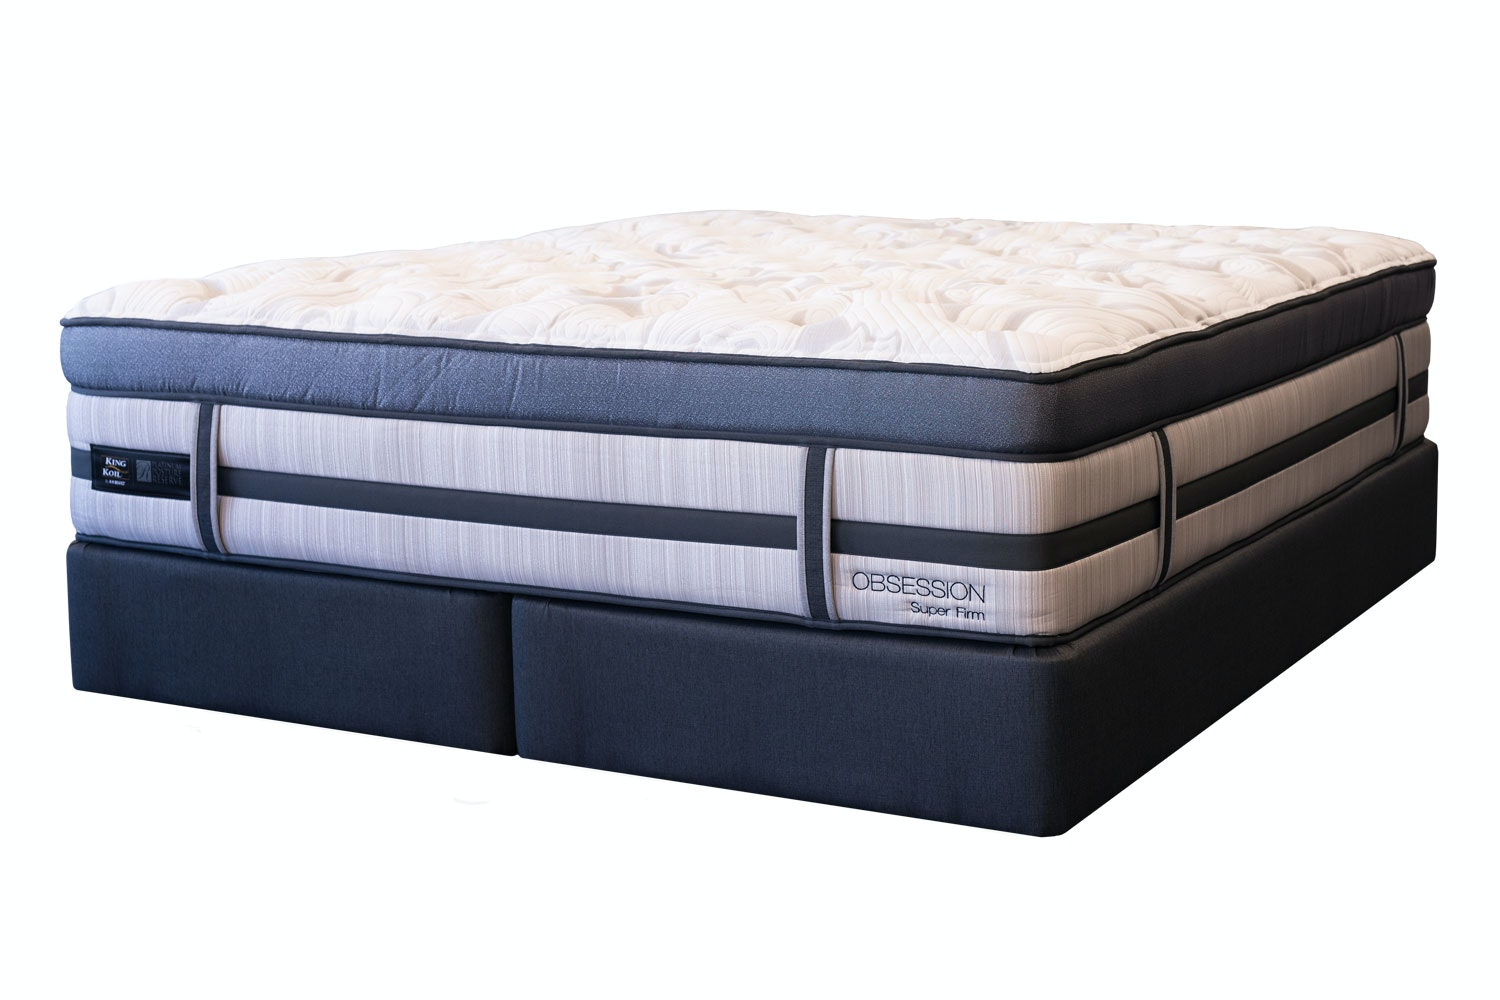 Obsession Super Firm Californian King Bed by King Koil